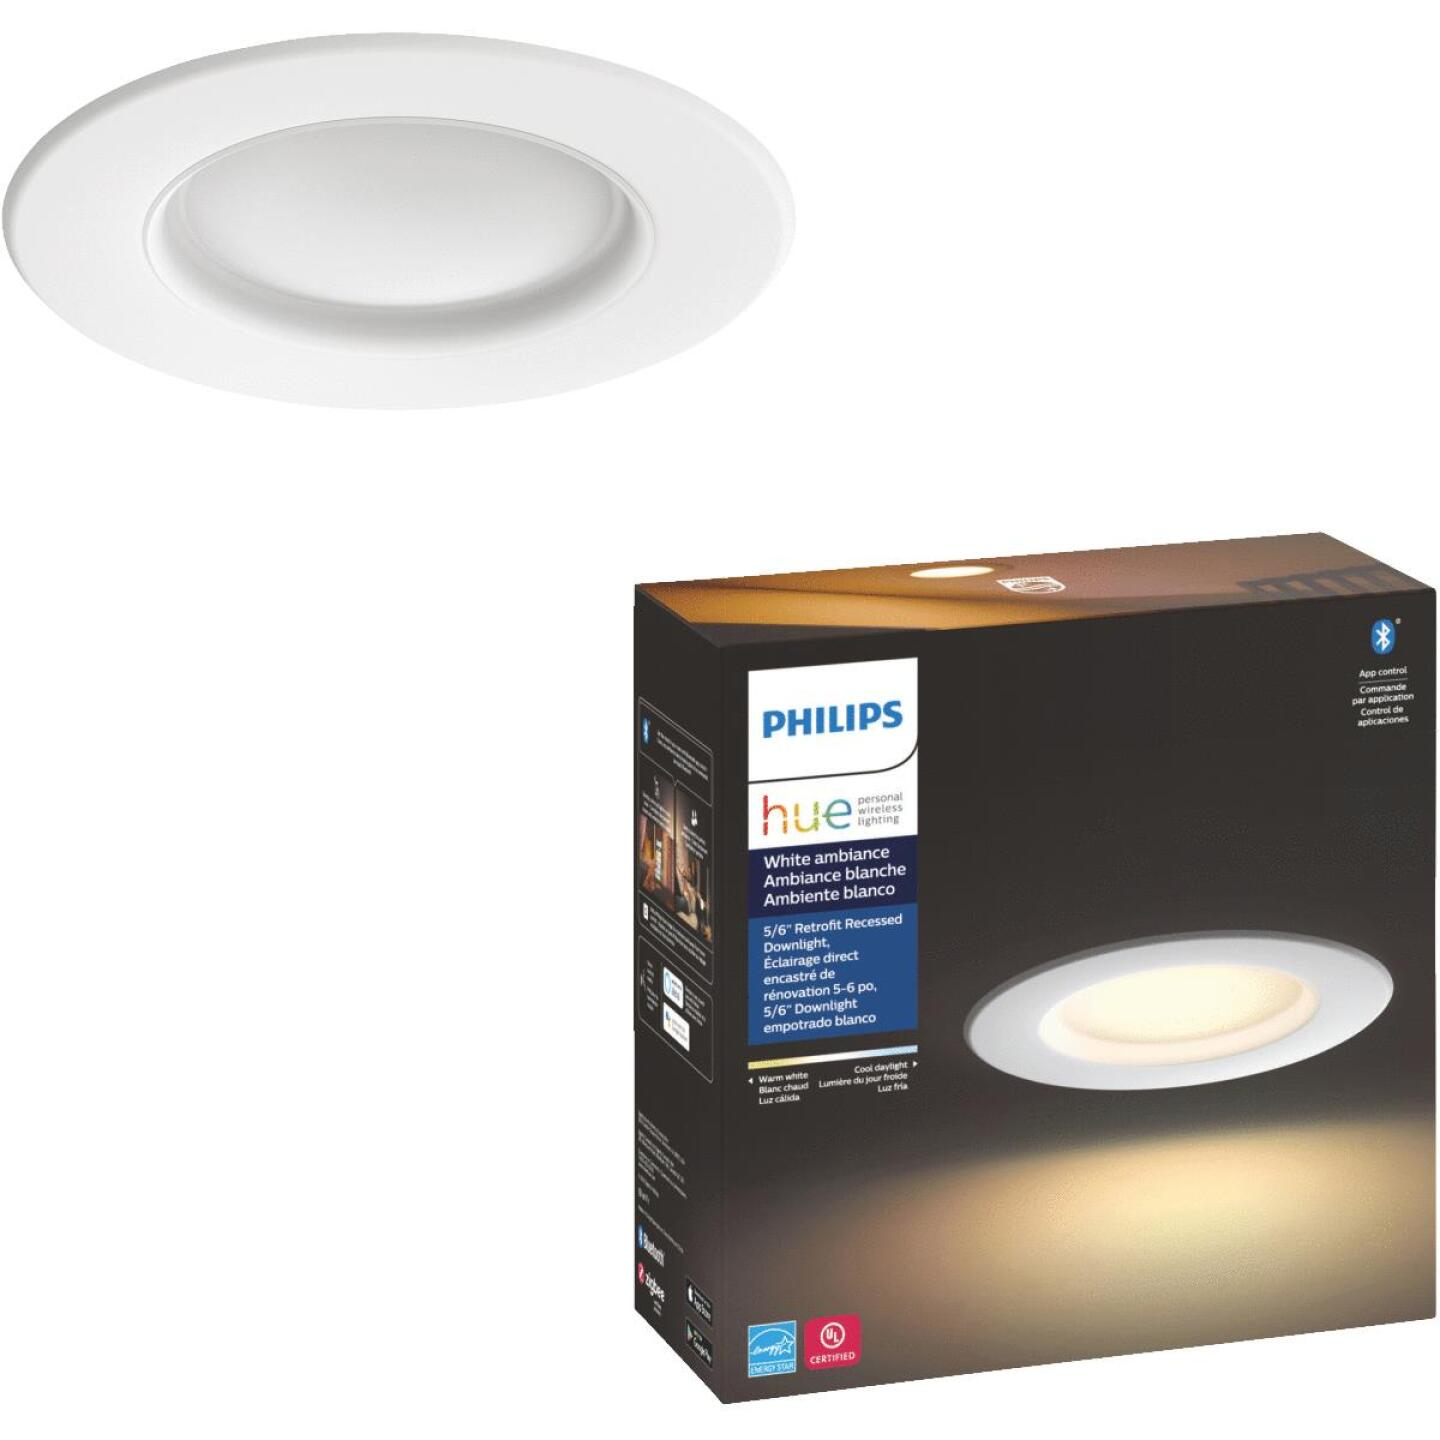 Philips Hue White Ambiance 5 In./6 In. Retrofit White LED Recessed Light Kit Image 1